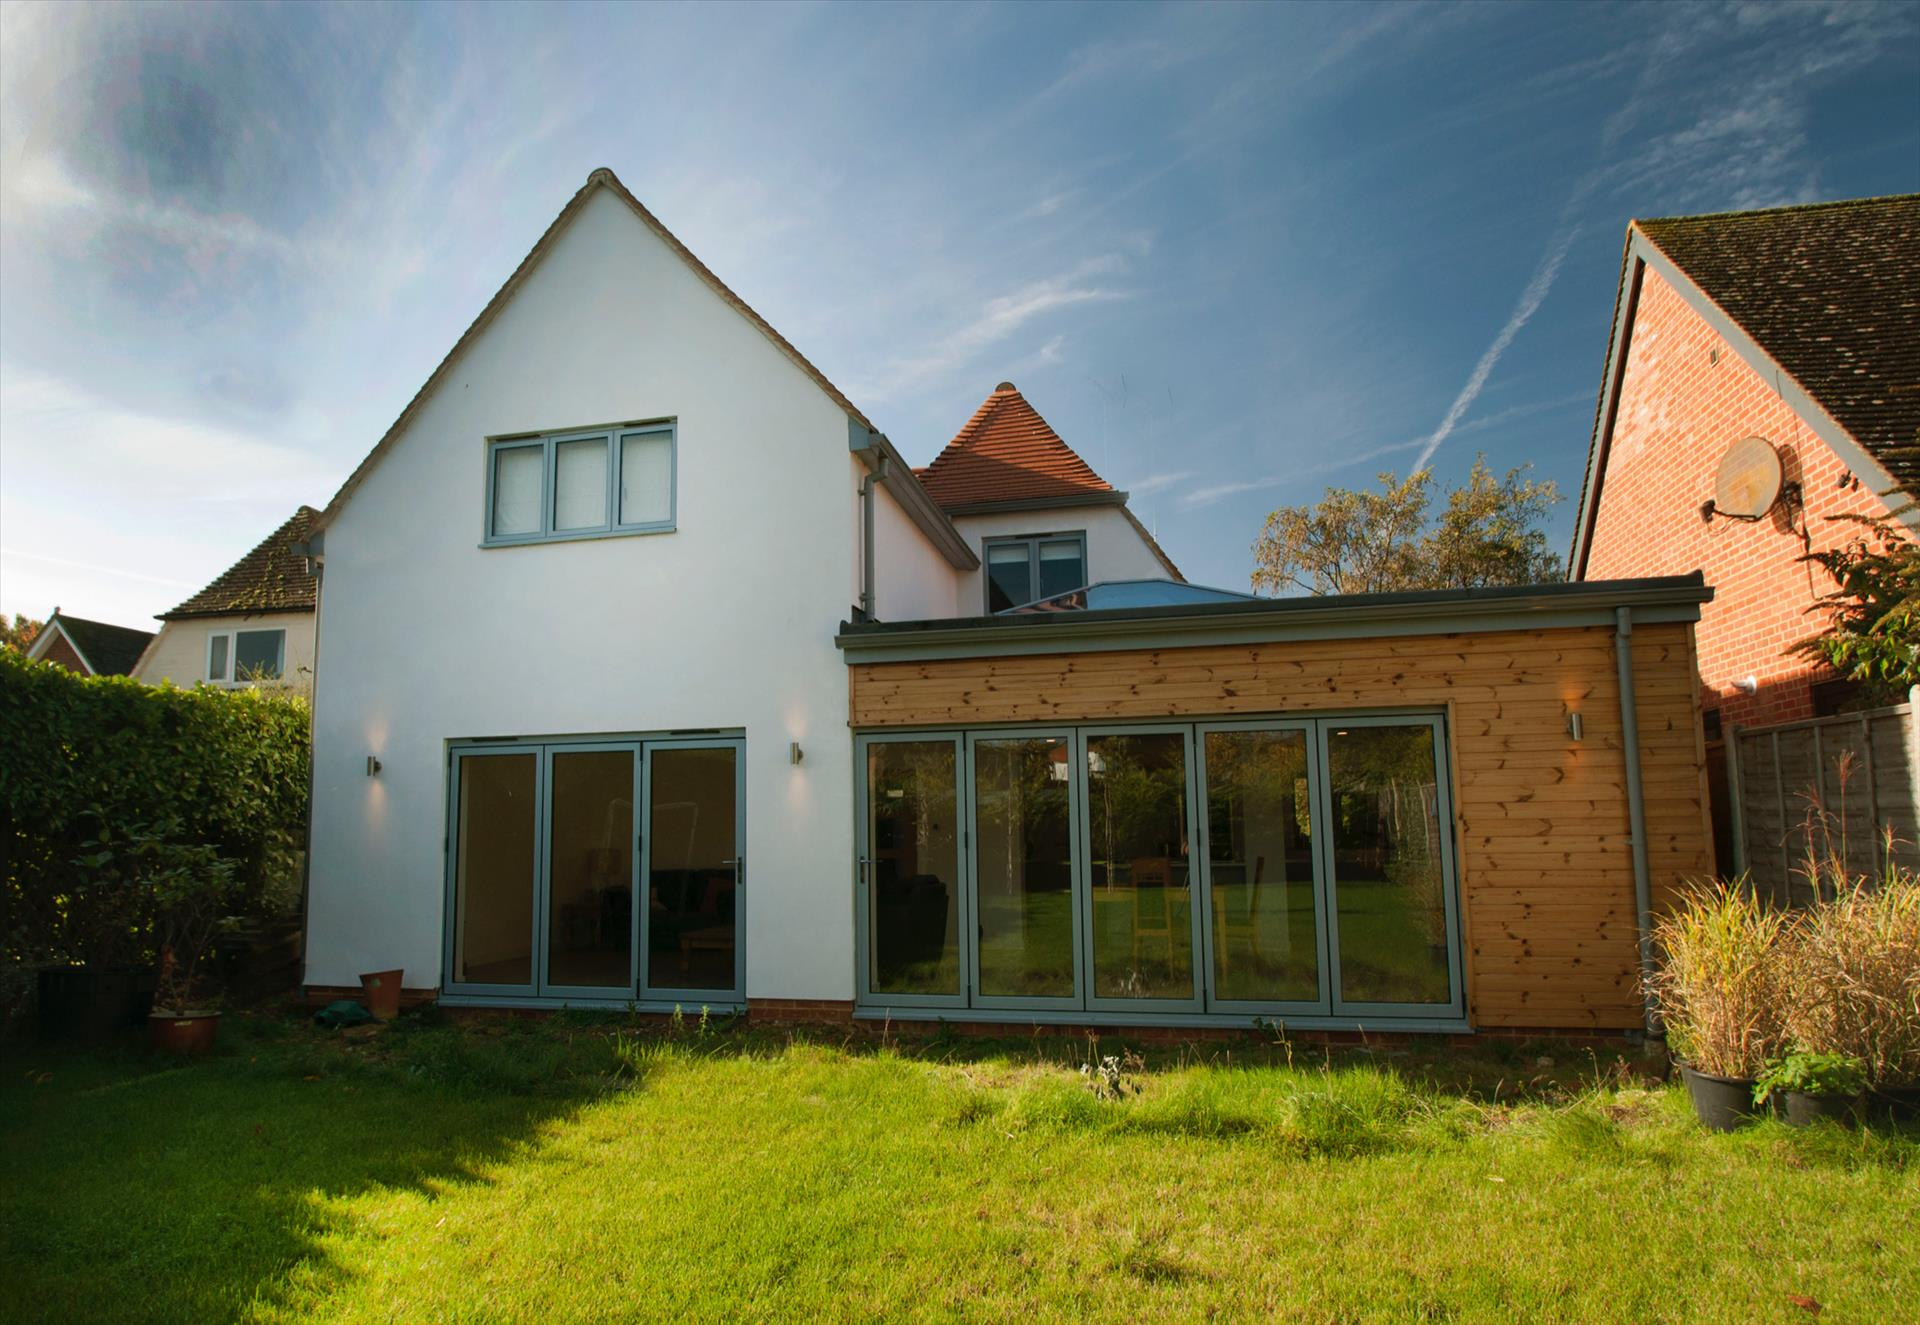 Steve Bowley Building & Renovation Ltd